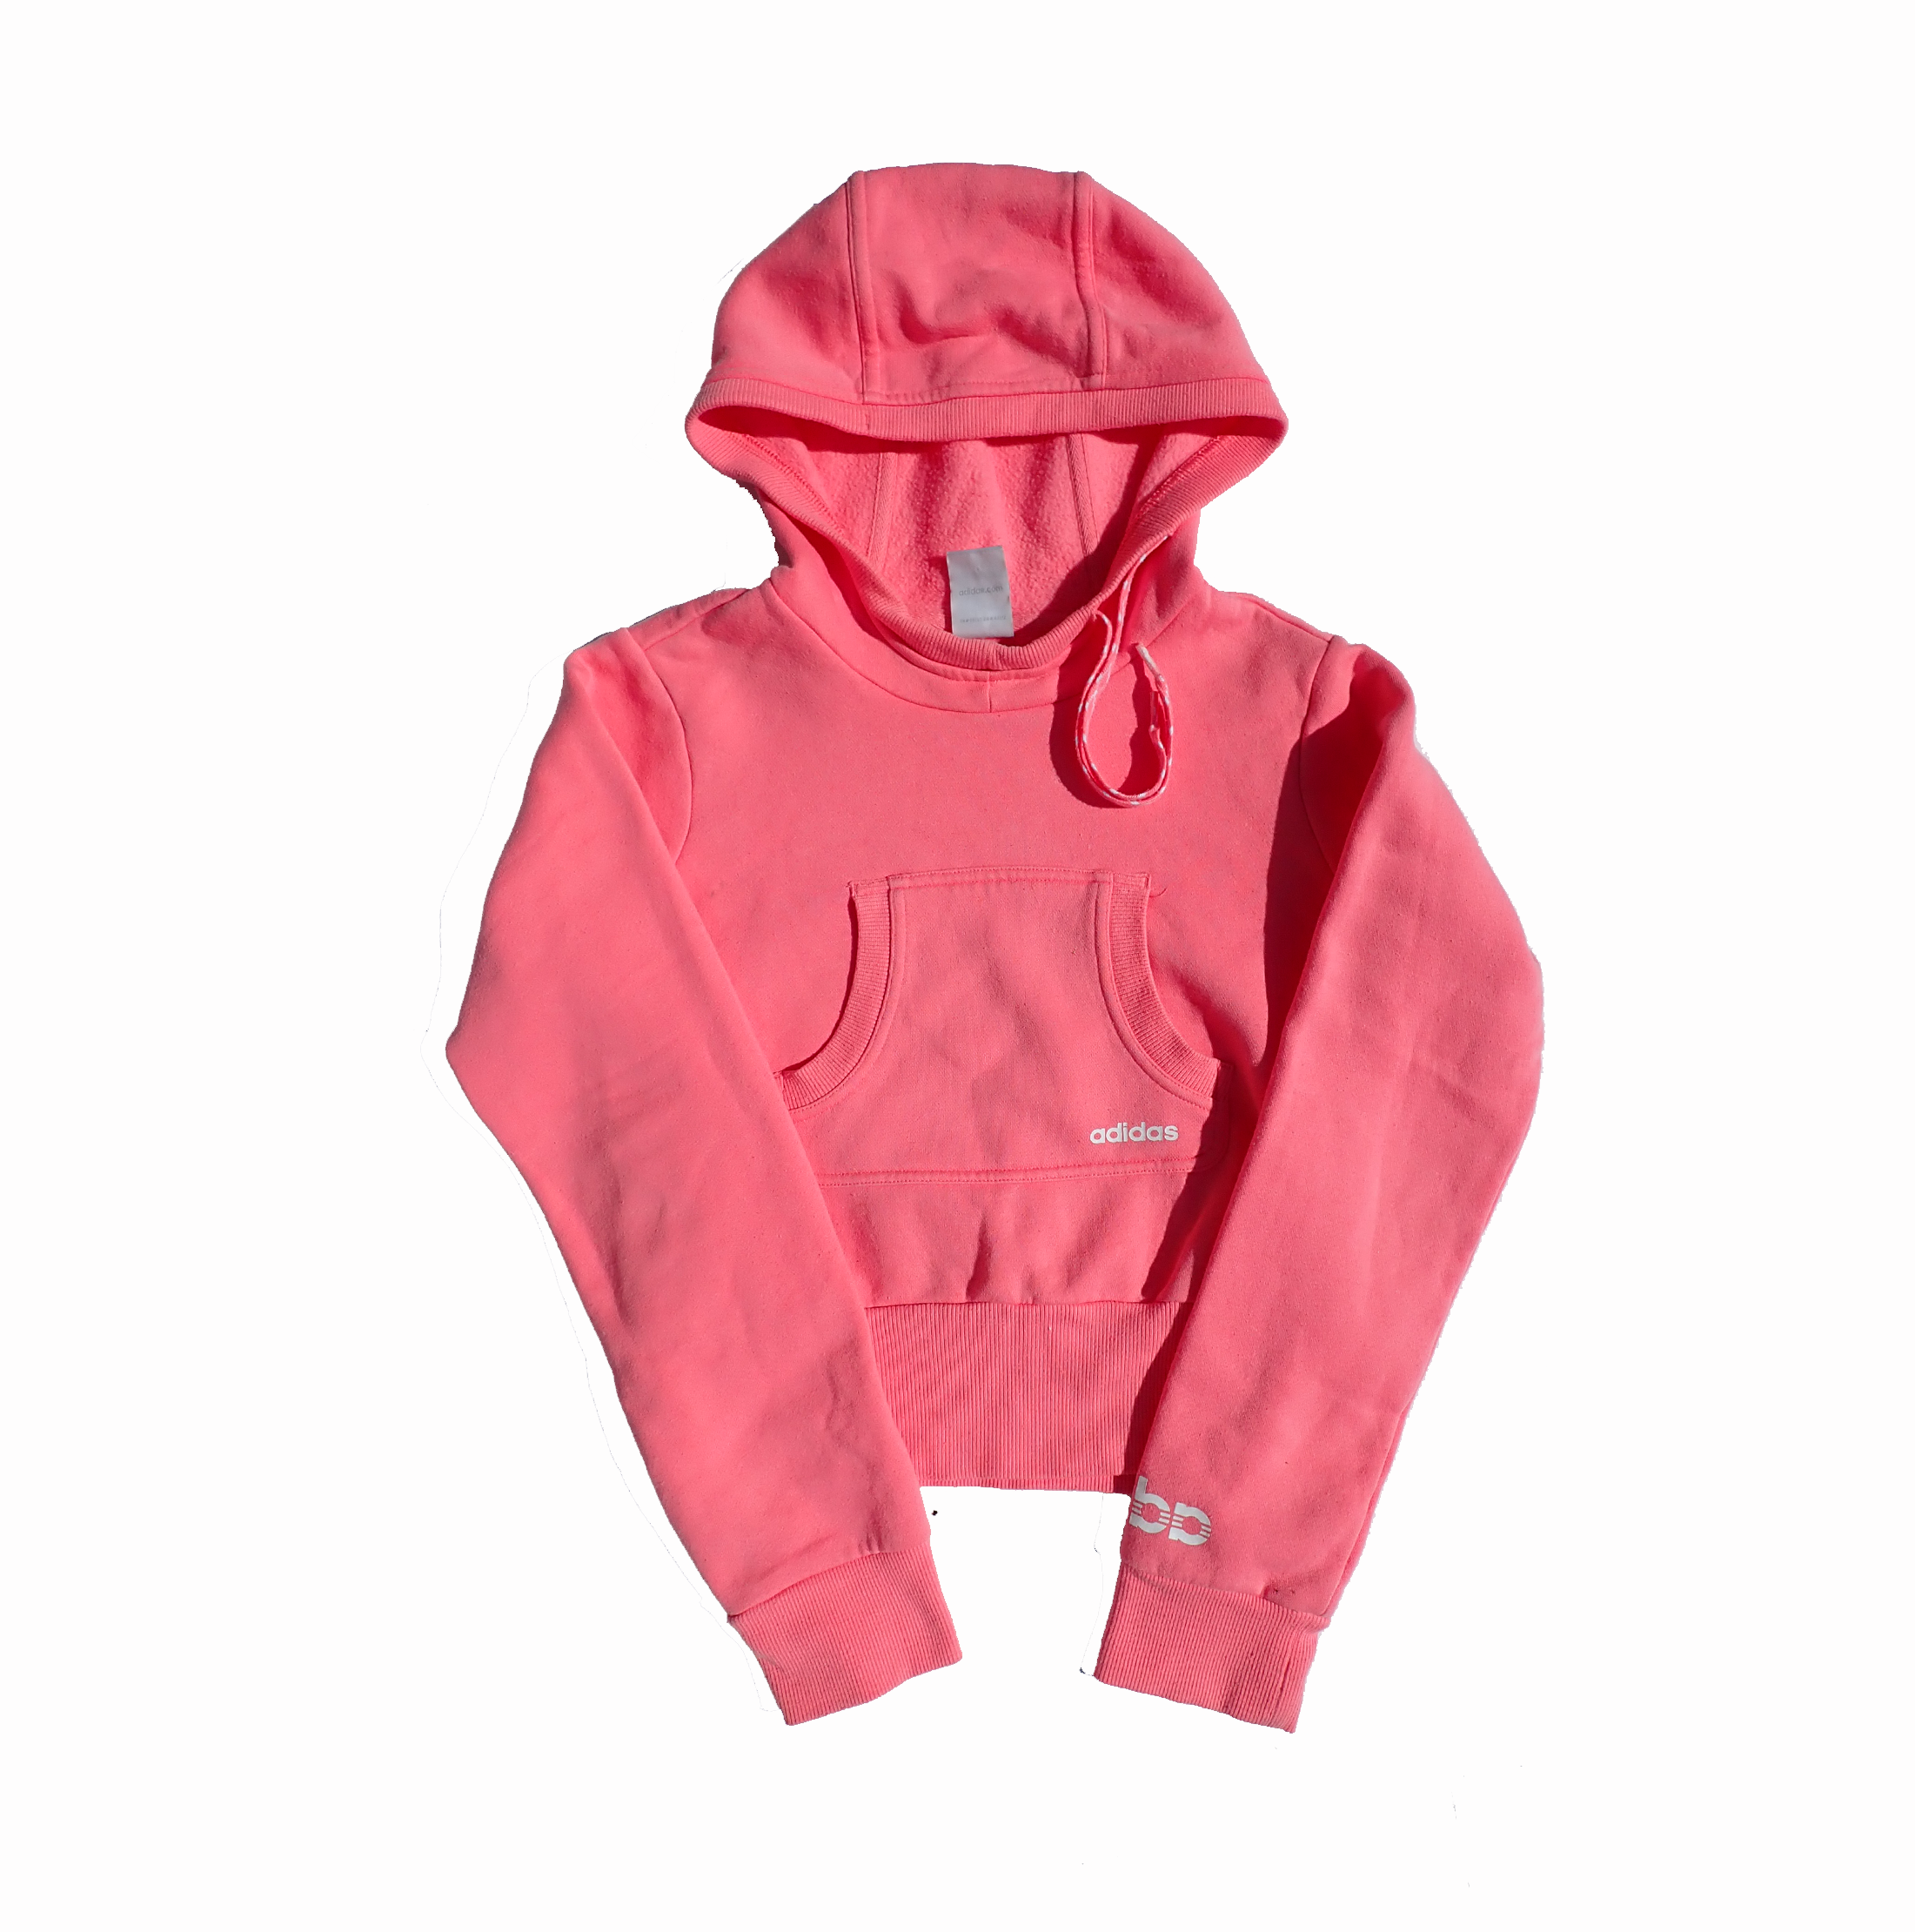 Adidas Wmns Cropped Hoodie